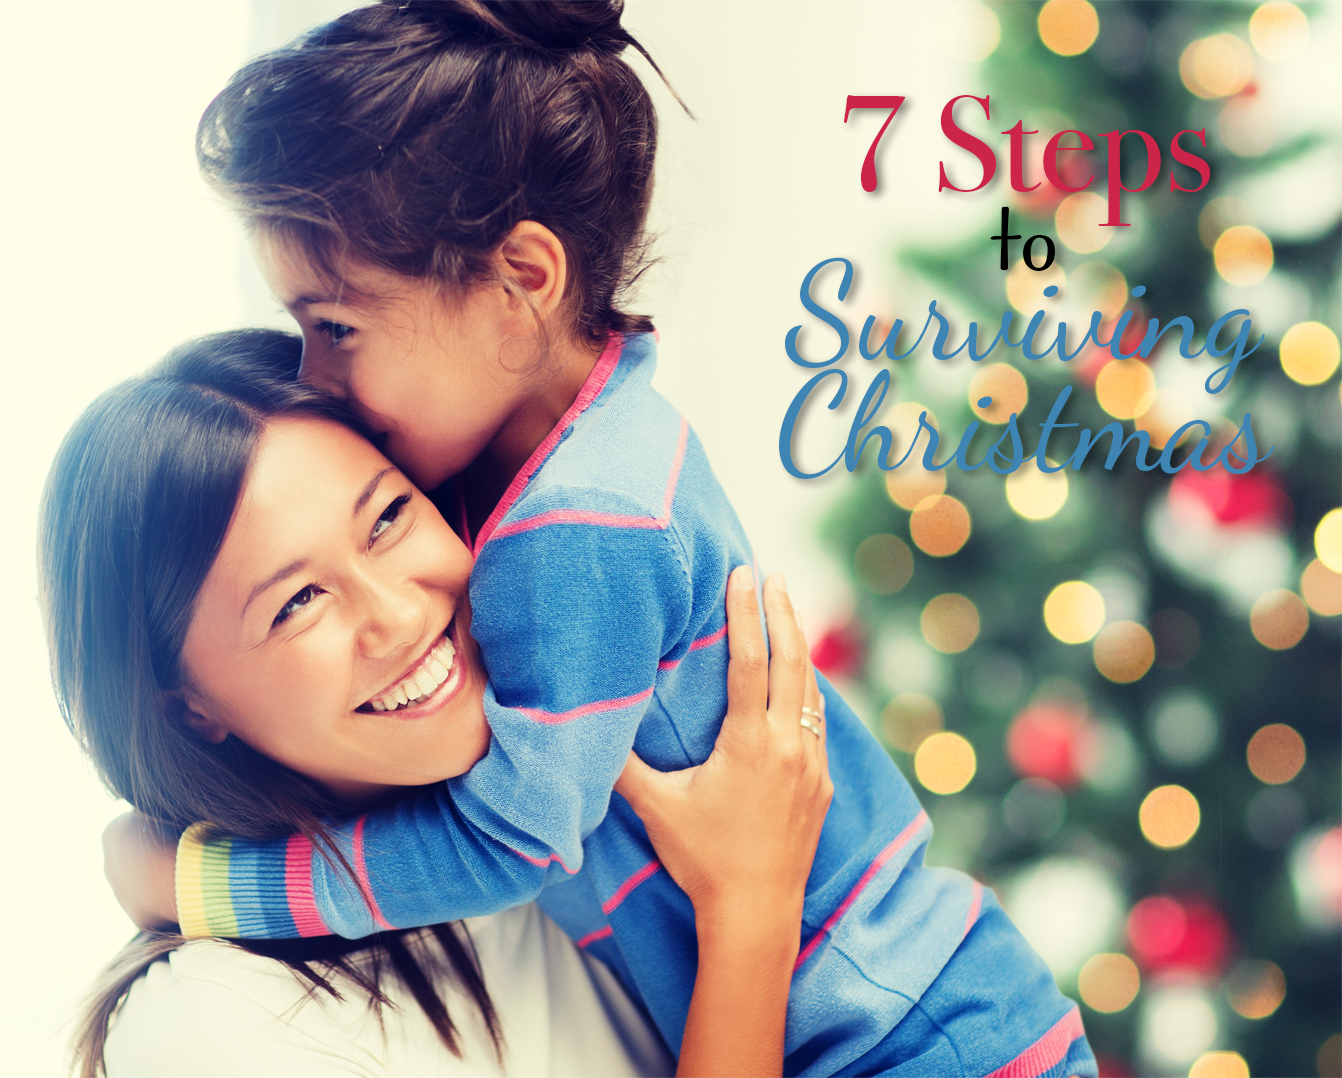 7 Steps to Surviving Christmas with Kids